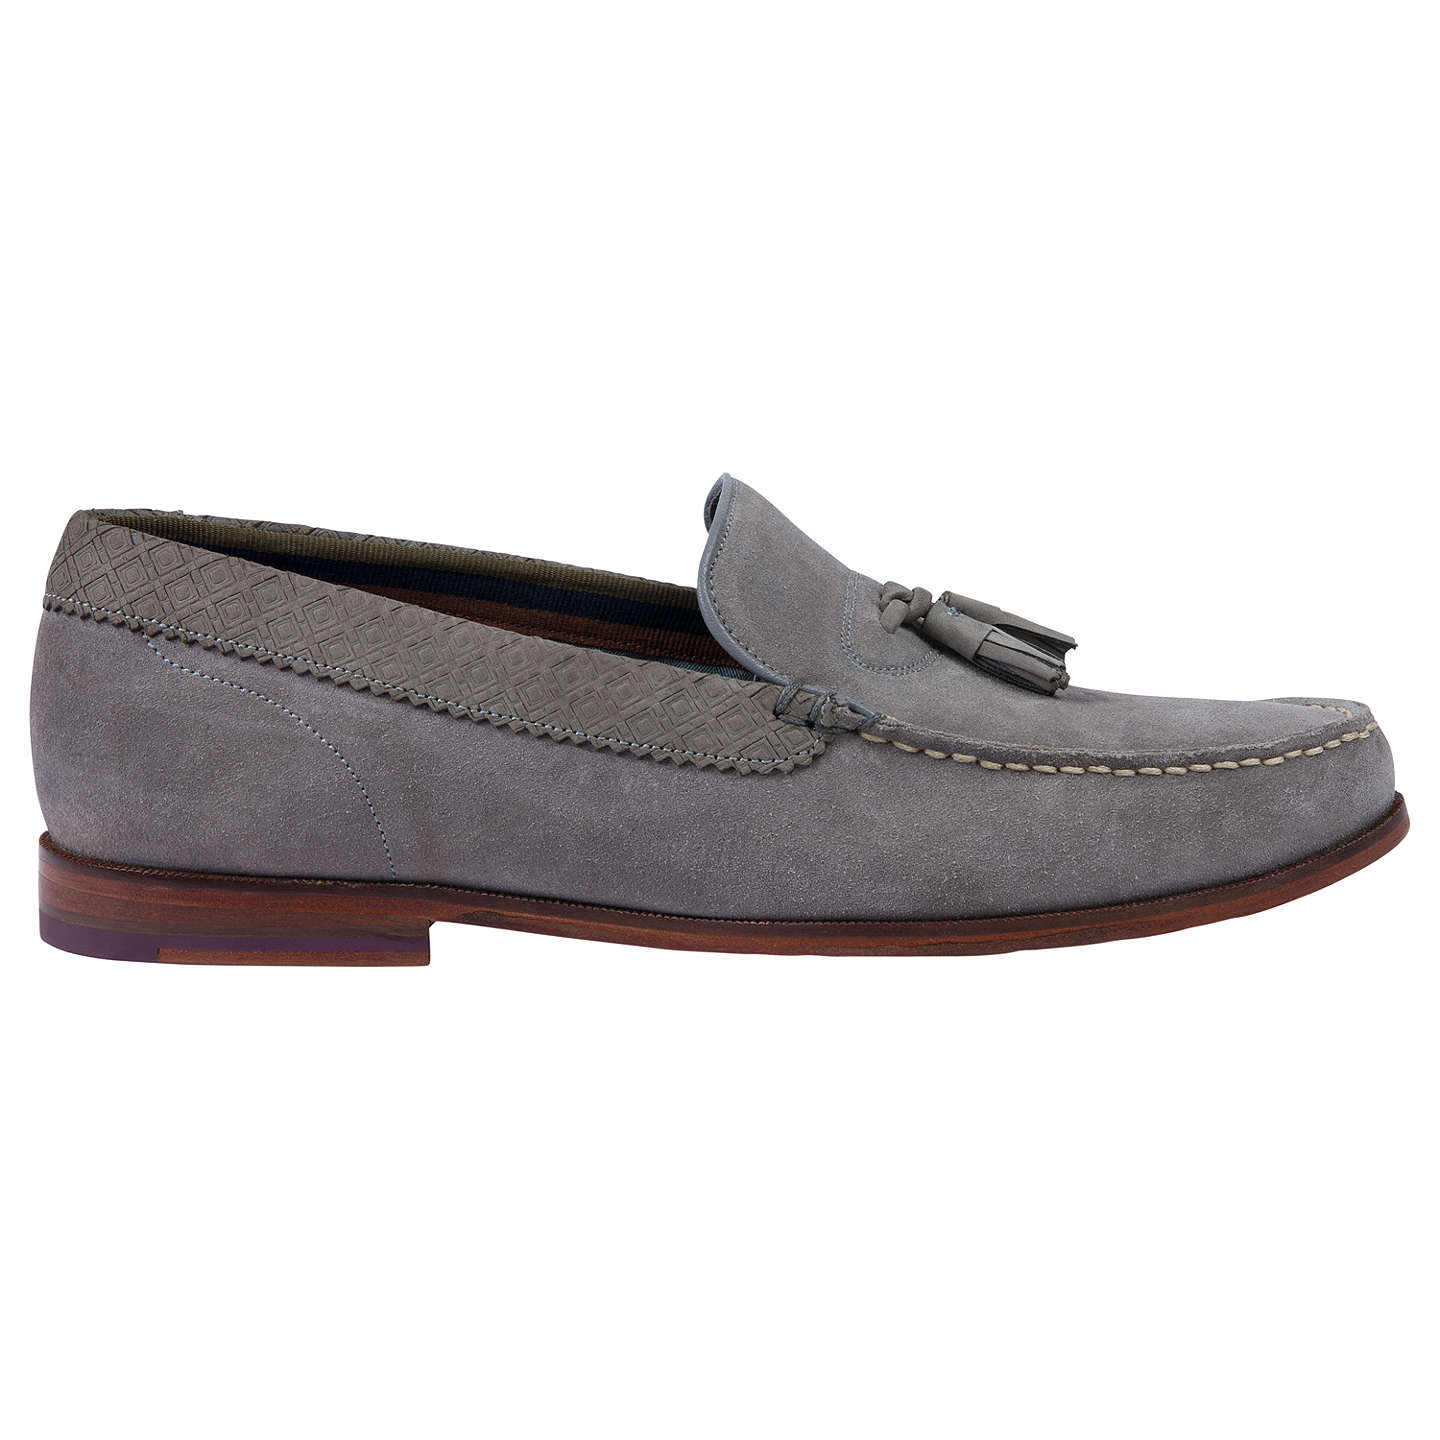 BuyTed Baker Dougge Suede Tassel Loafers, Grey, 7 Online at johnlewis.com  ...